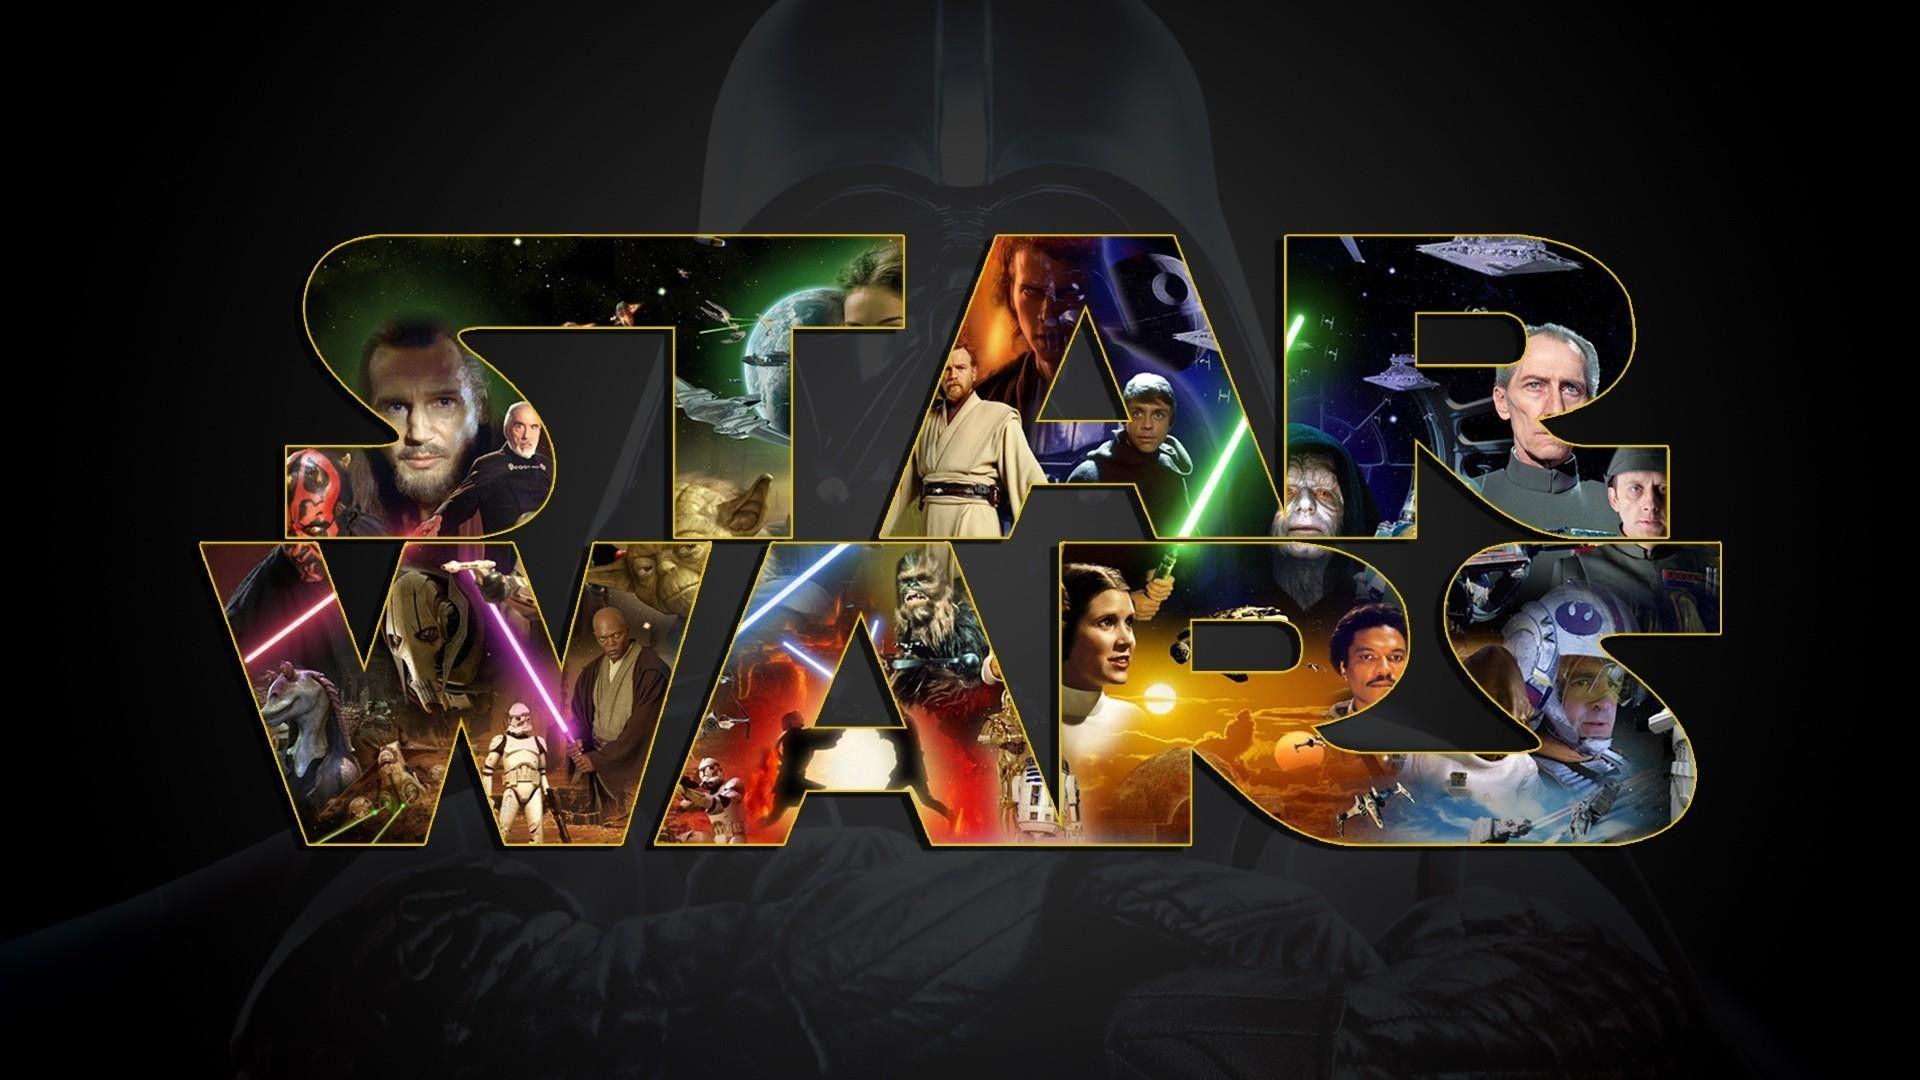 Star Wars All Characters Wallpapers Top Free Star Wars All Characters Backgrounds Wallpaperaccess